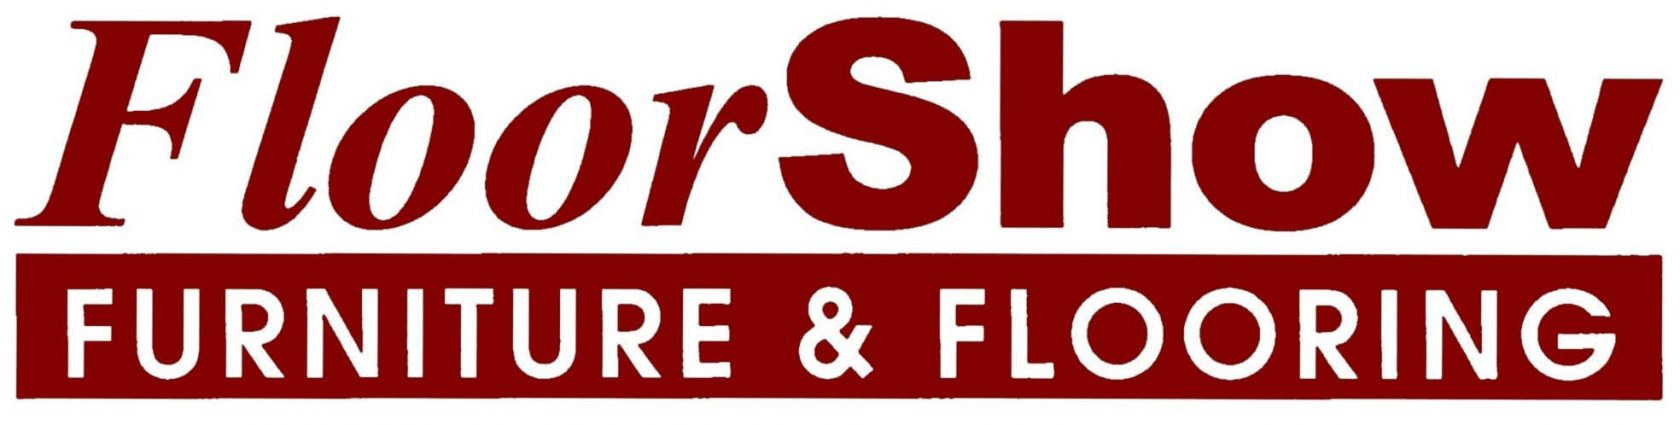 floor show color logo